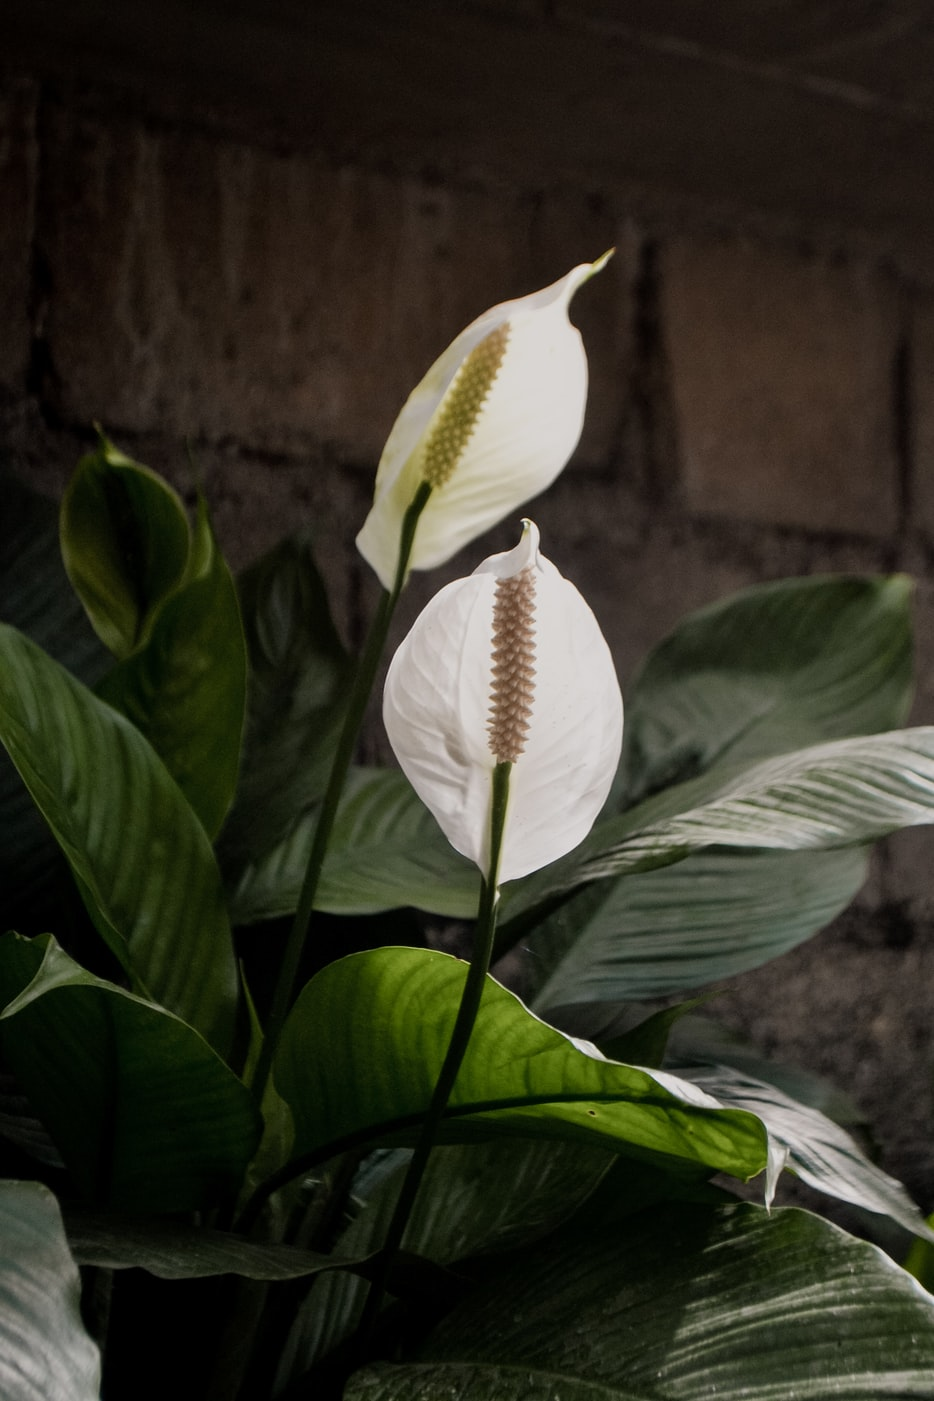 Stock photo of a peace lily plant